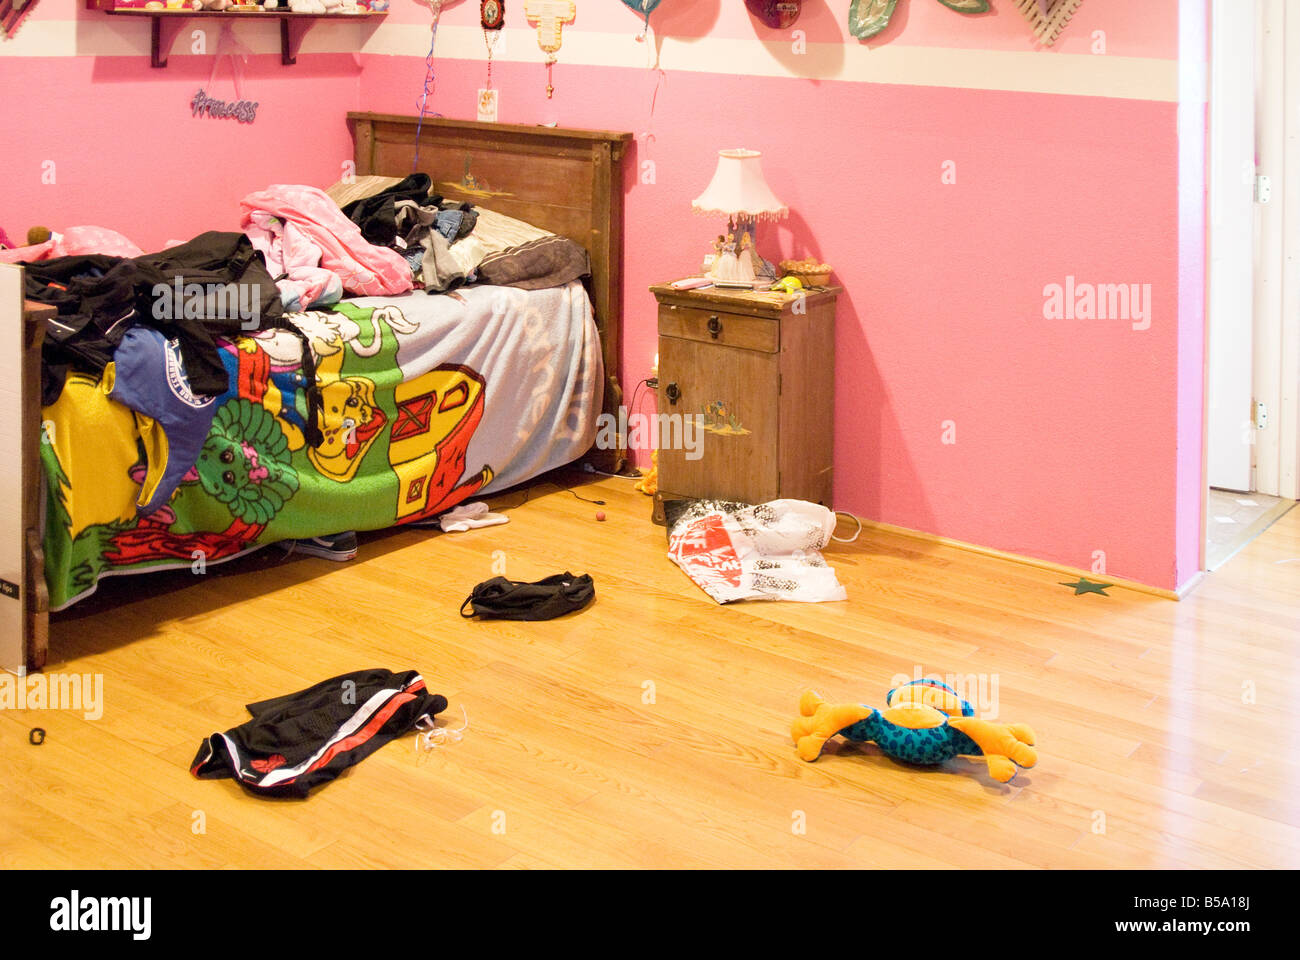 messy room mess stockfotos messy room mess bilder alamy. Black Bedroom Furniture Sets. Home Design Ideas